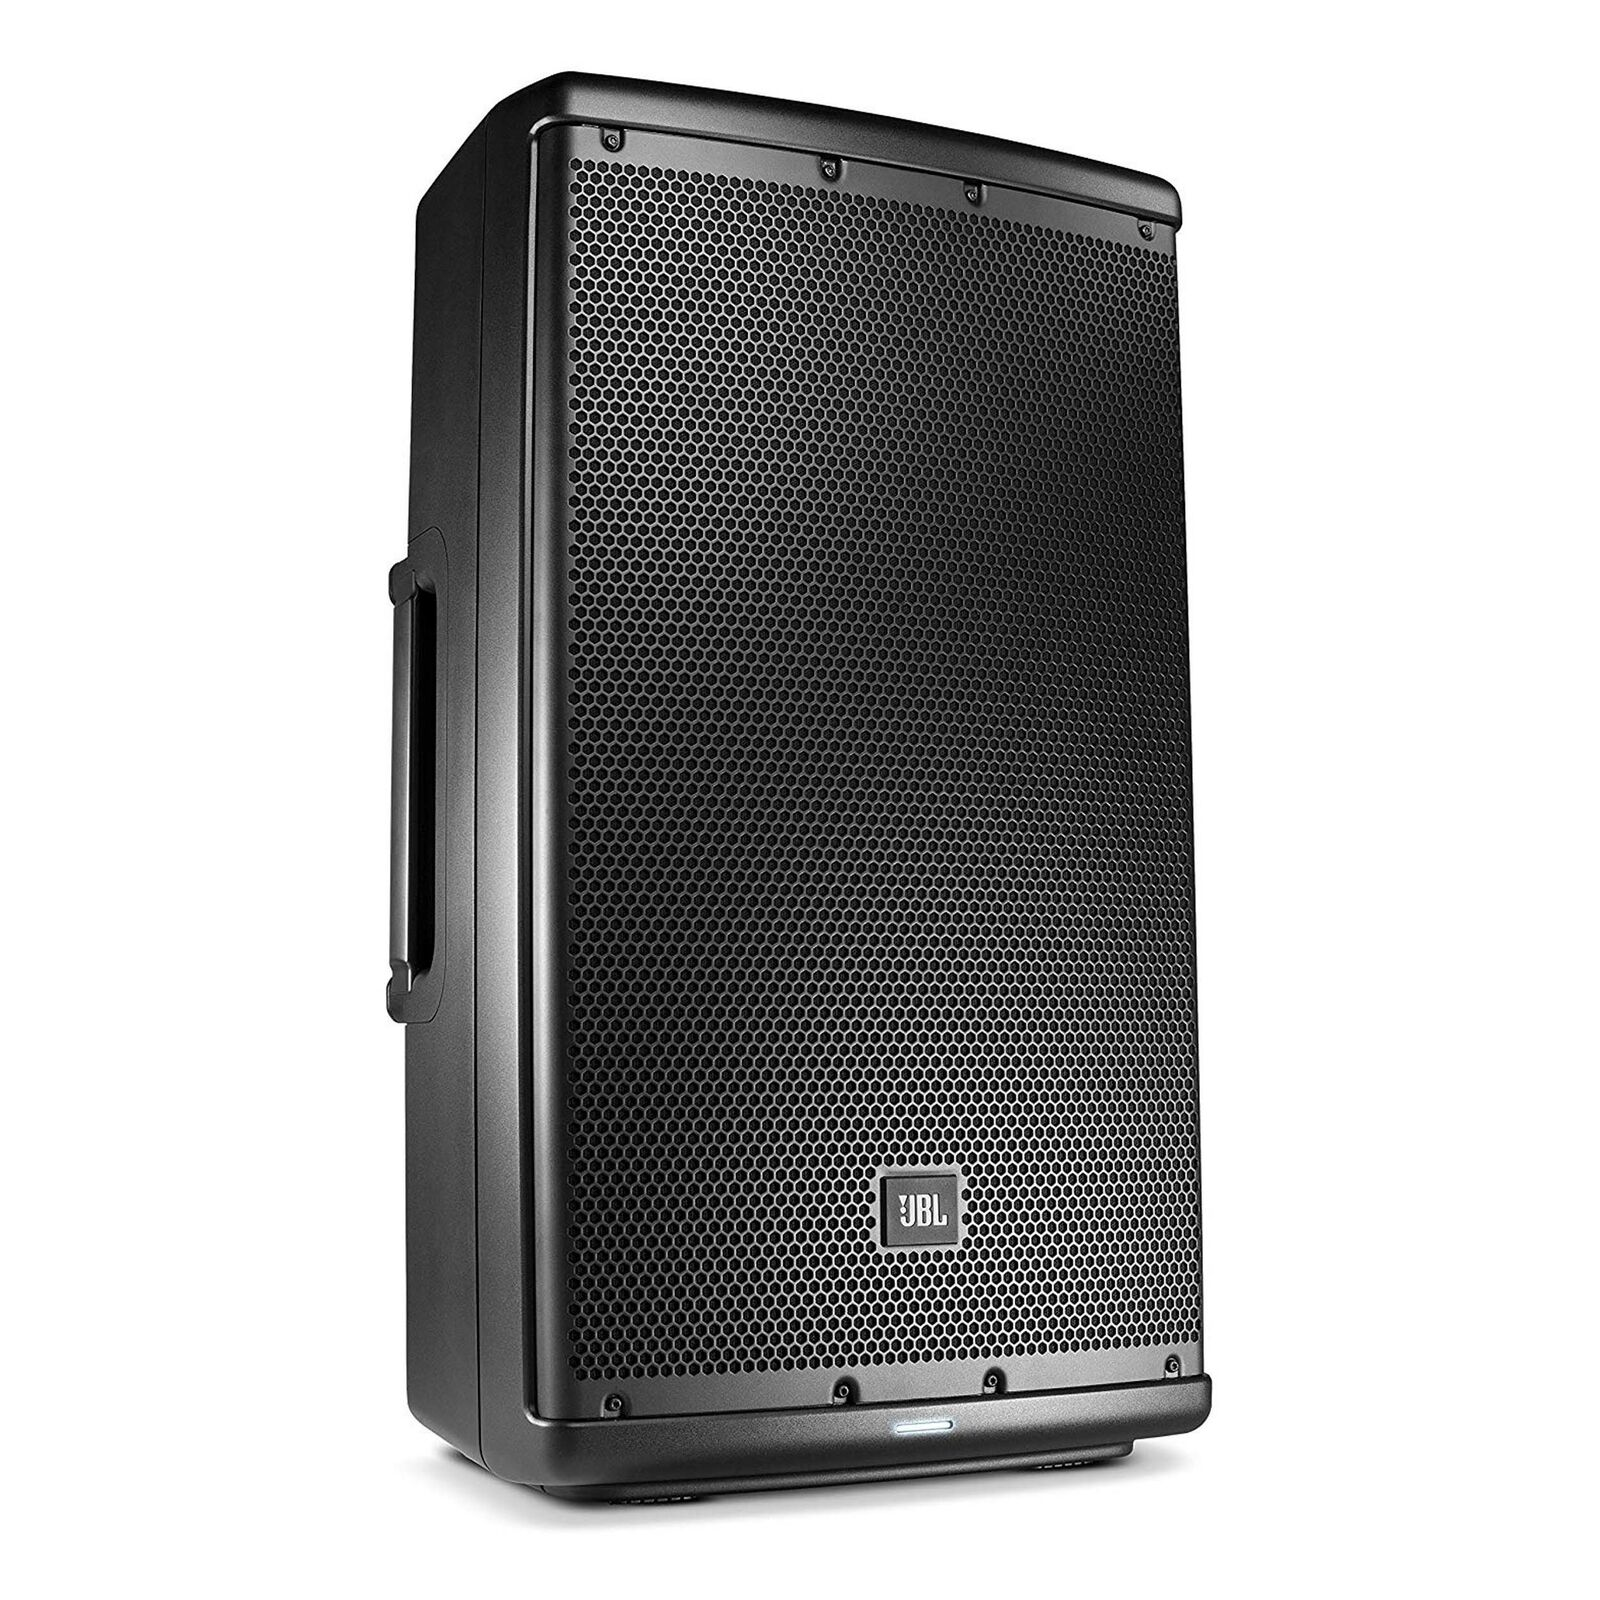 "JBL EON612 12"" Two-Way Powered Stage Monitor. Buy it now for 228.99"